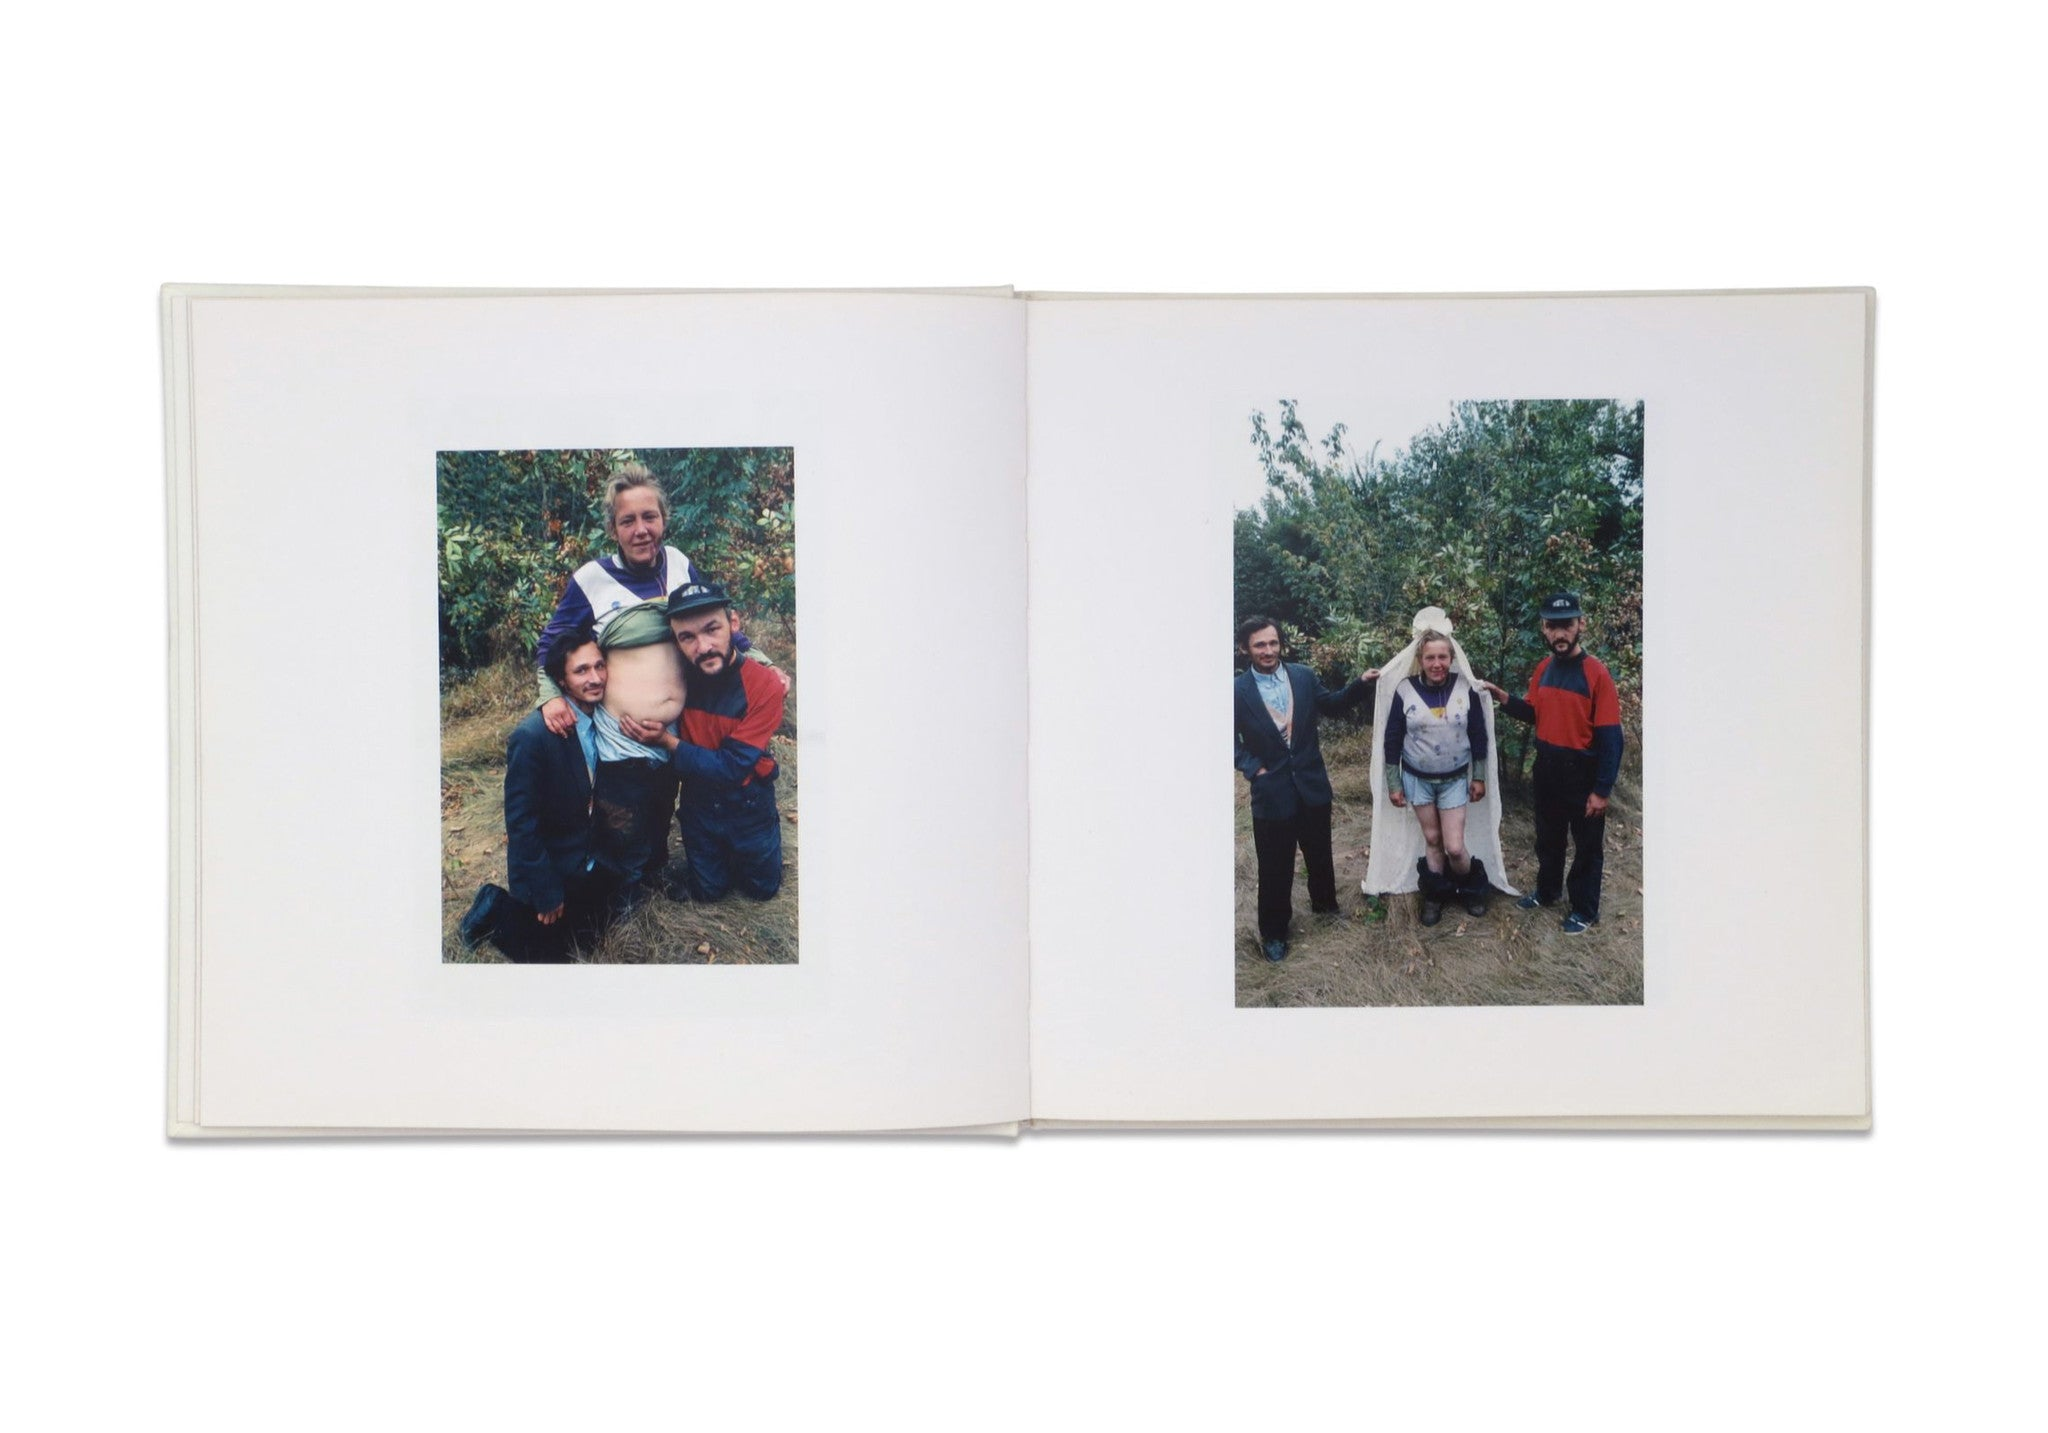 THE WEDDING by Boris Mikhailov